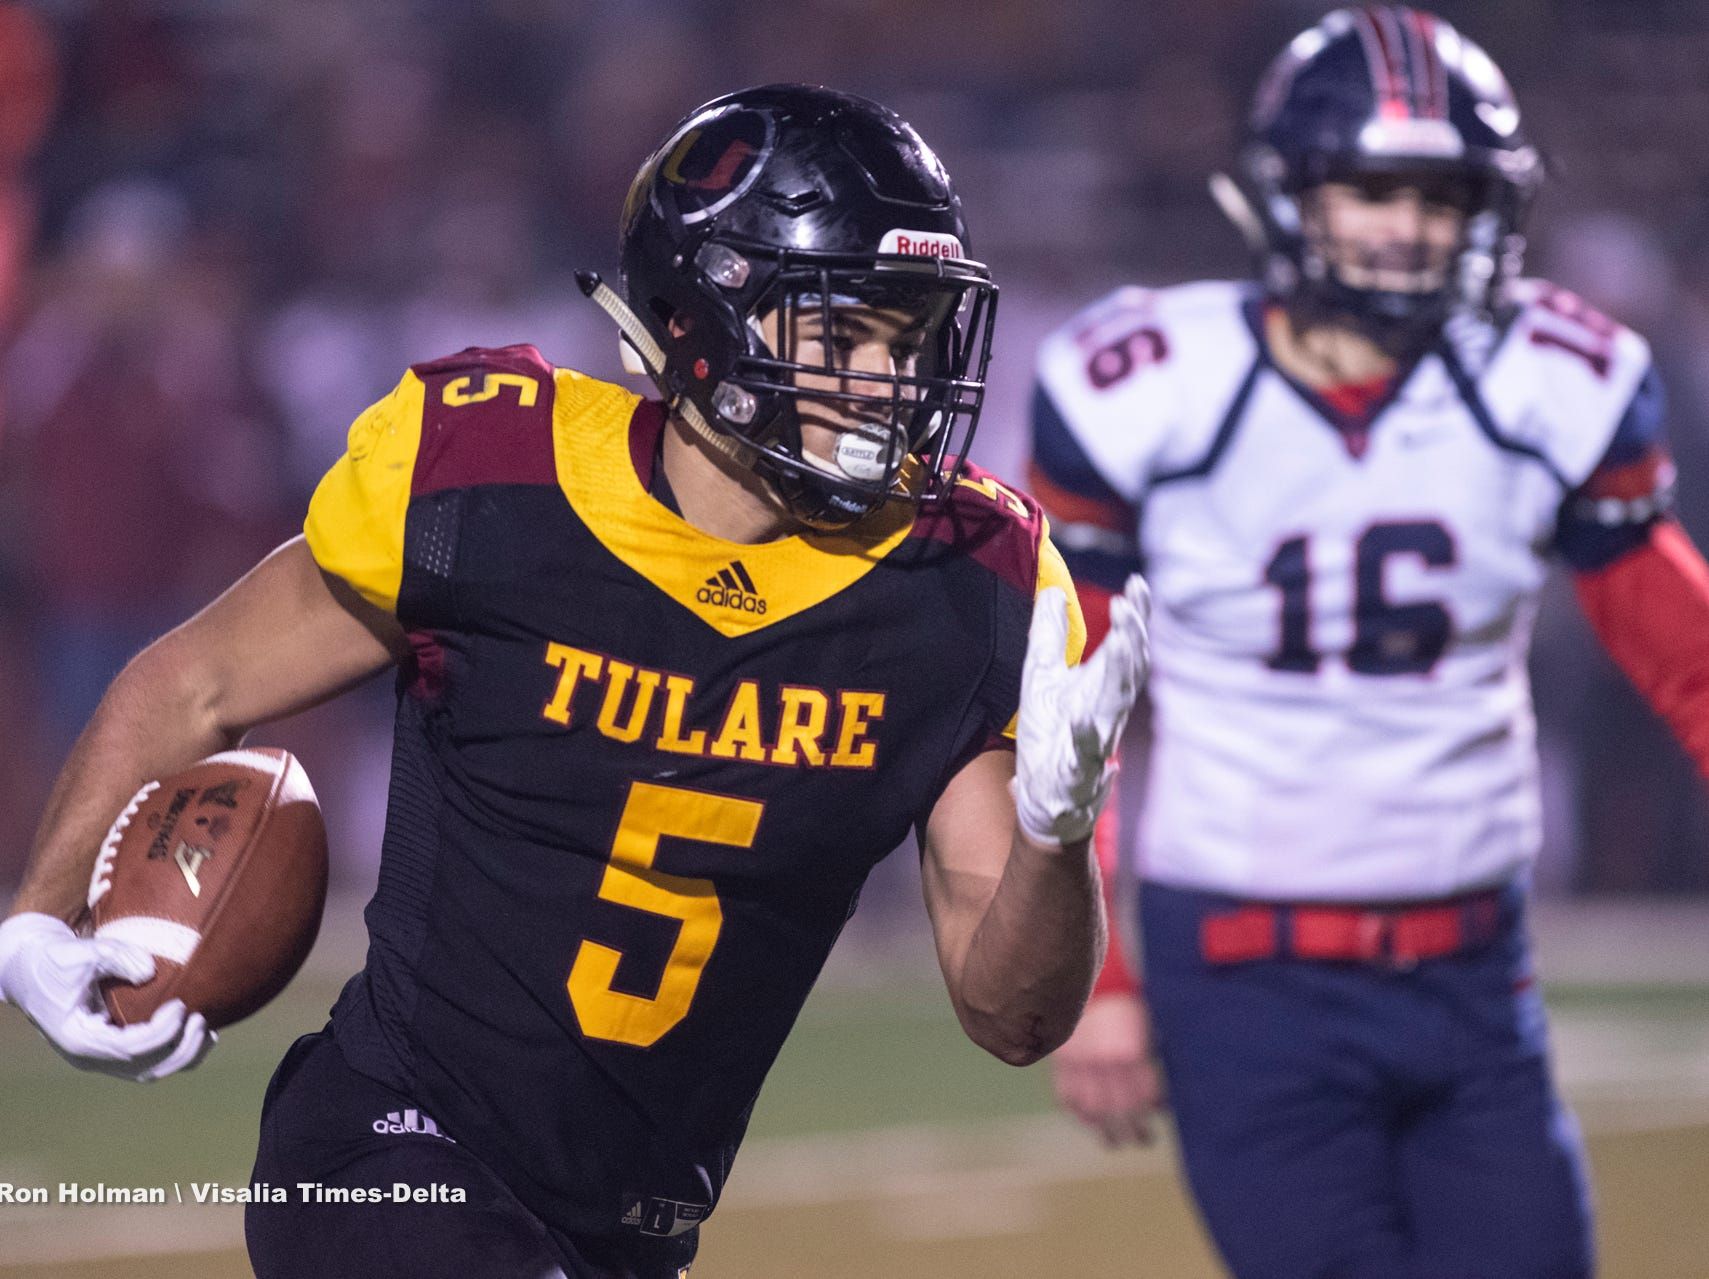 Tulare Union hosts San Joaquin Memorial in a CIF State Northern California Division 2-A Regional Bowl Game on Saturday, December 8, 2018.